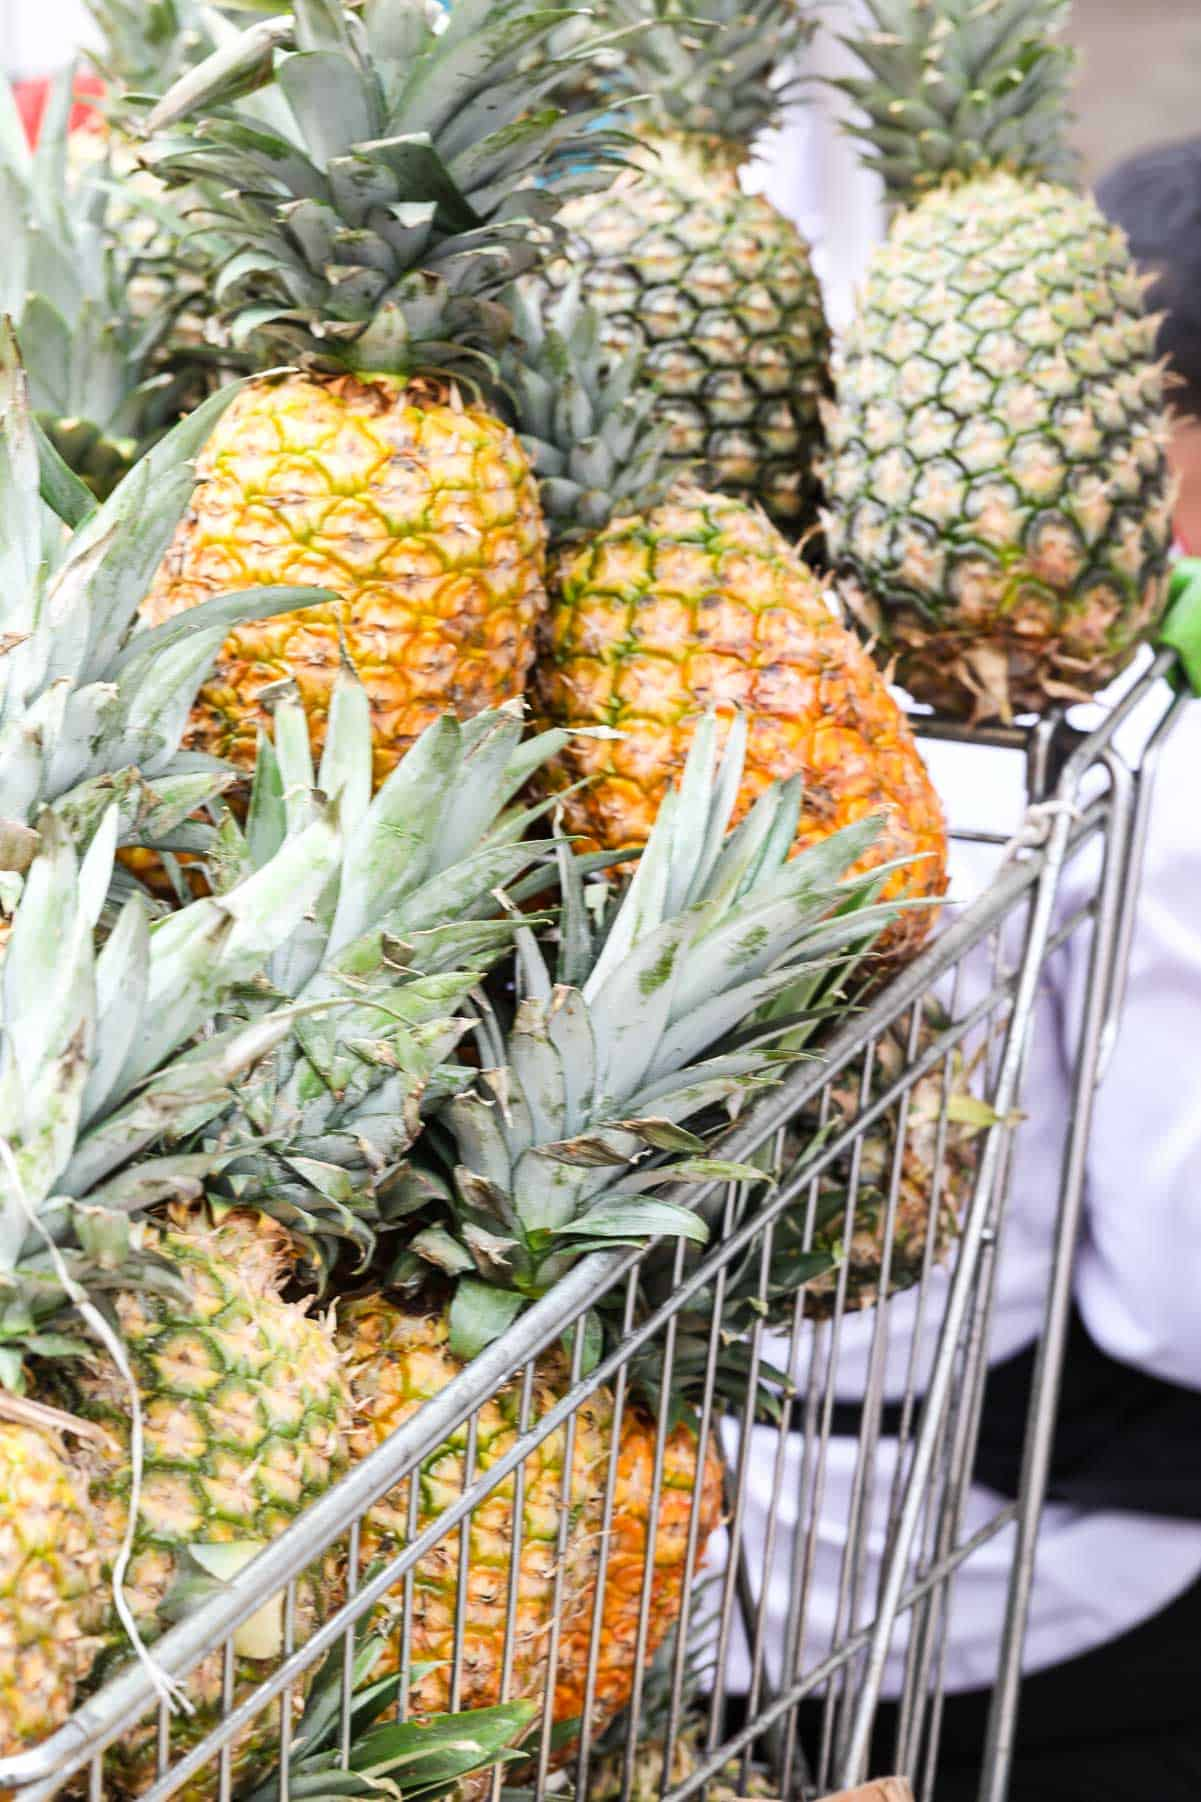 A steel grocery cart filled with fresh ripe whole pineapples in a market.